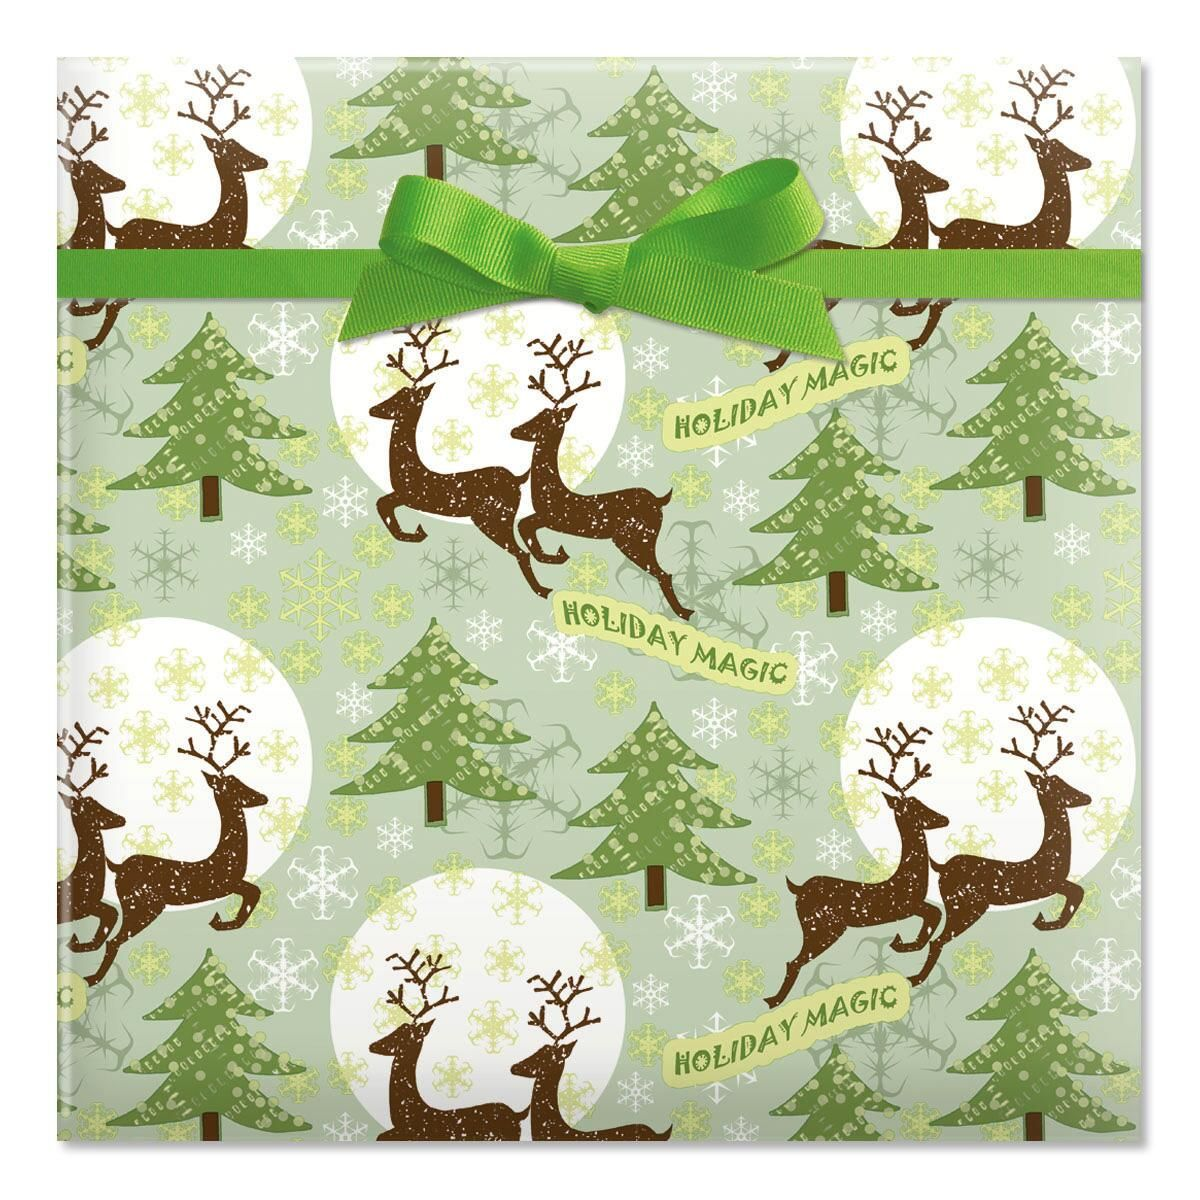 Reindeer Holiday Magic Jumbo Rolled Gift Wrap